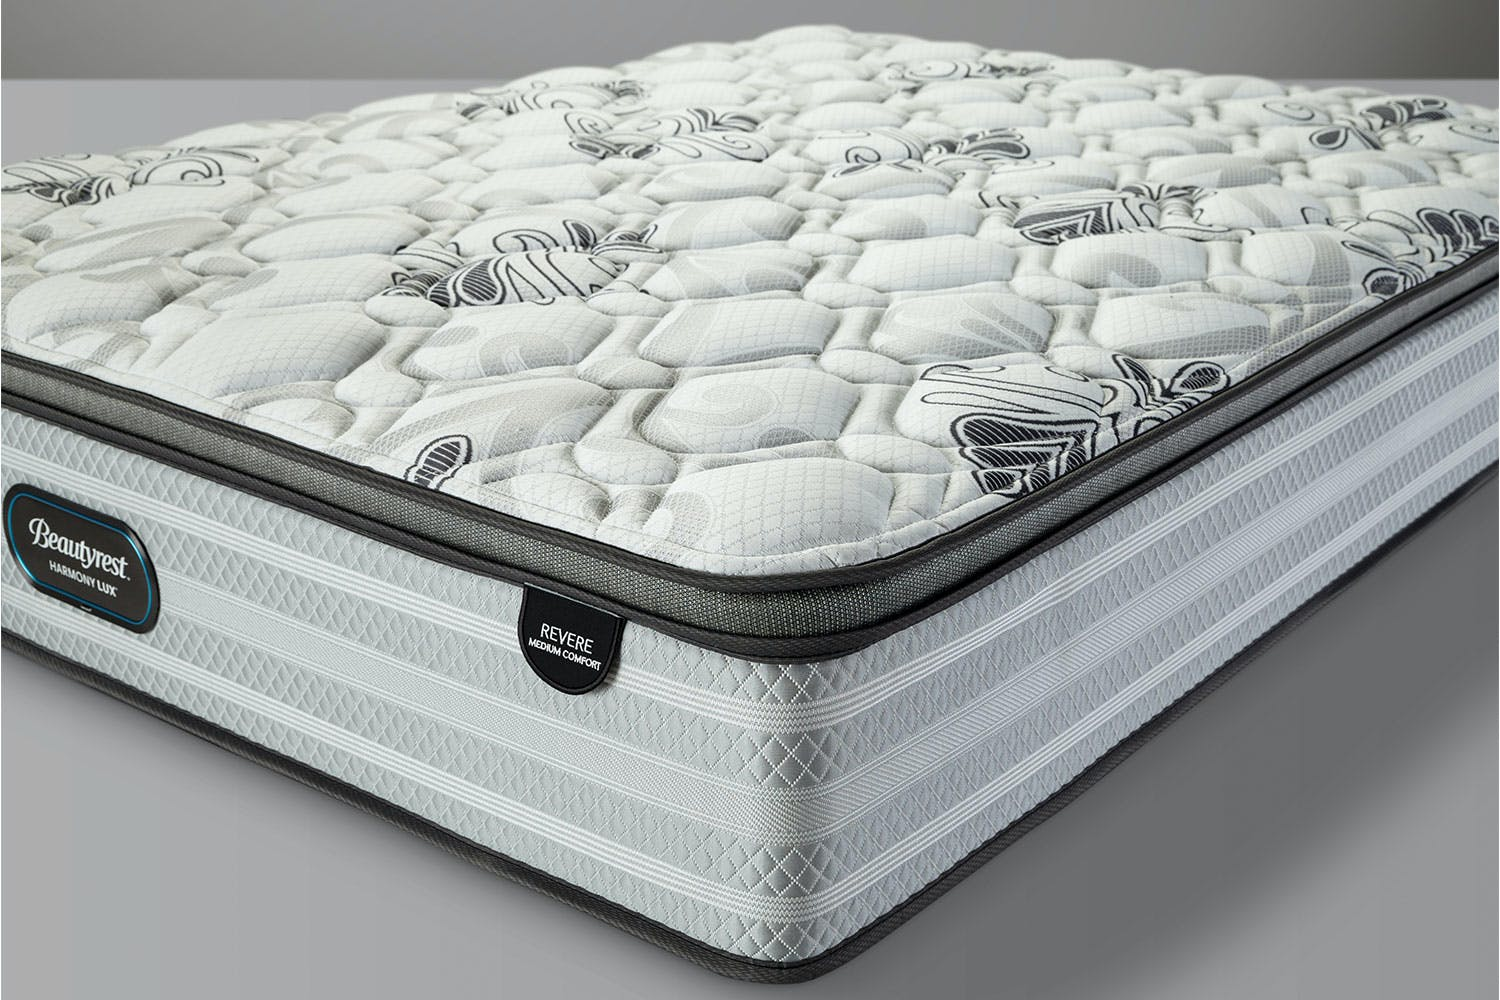 Revere Medium Super King Mattress by Beautyrest